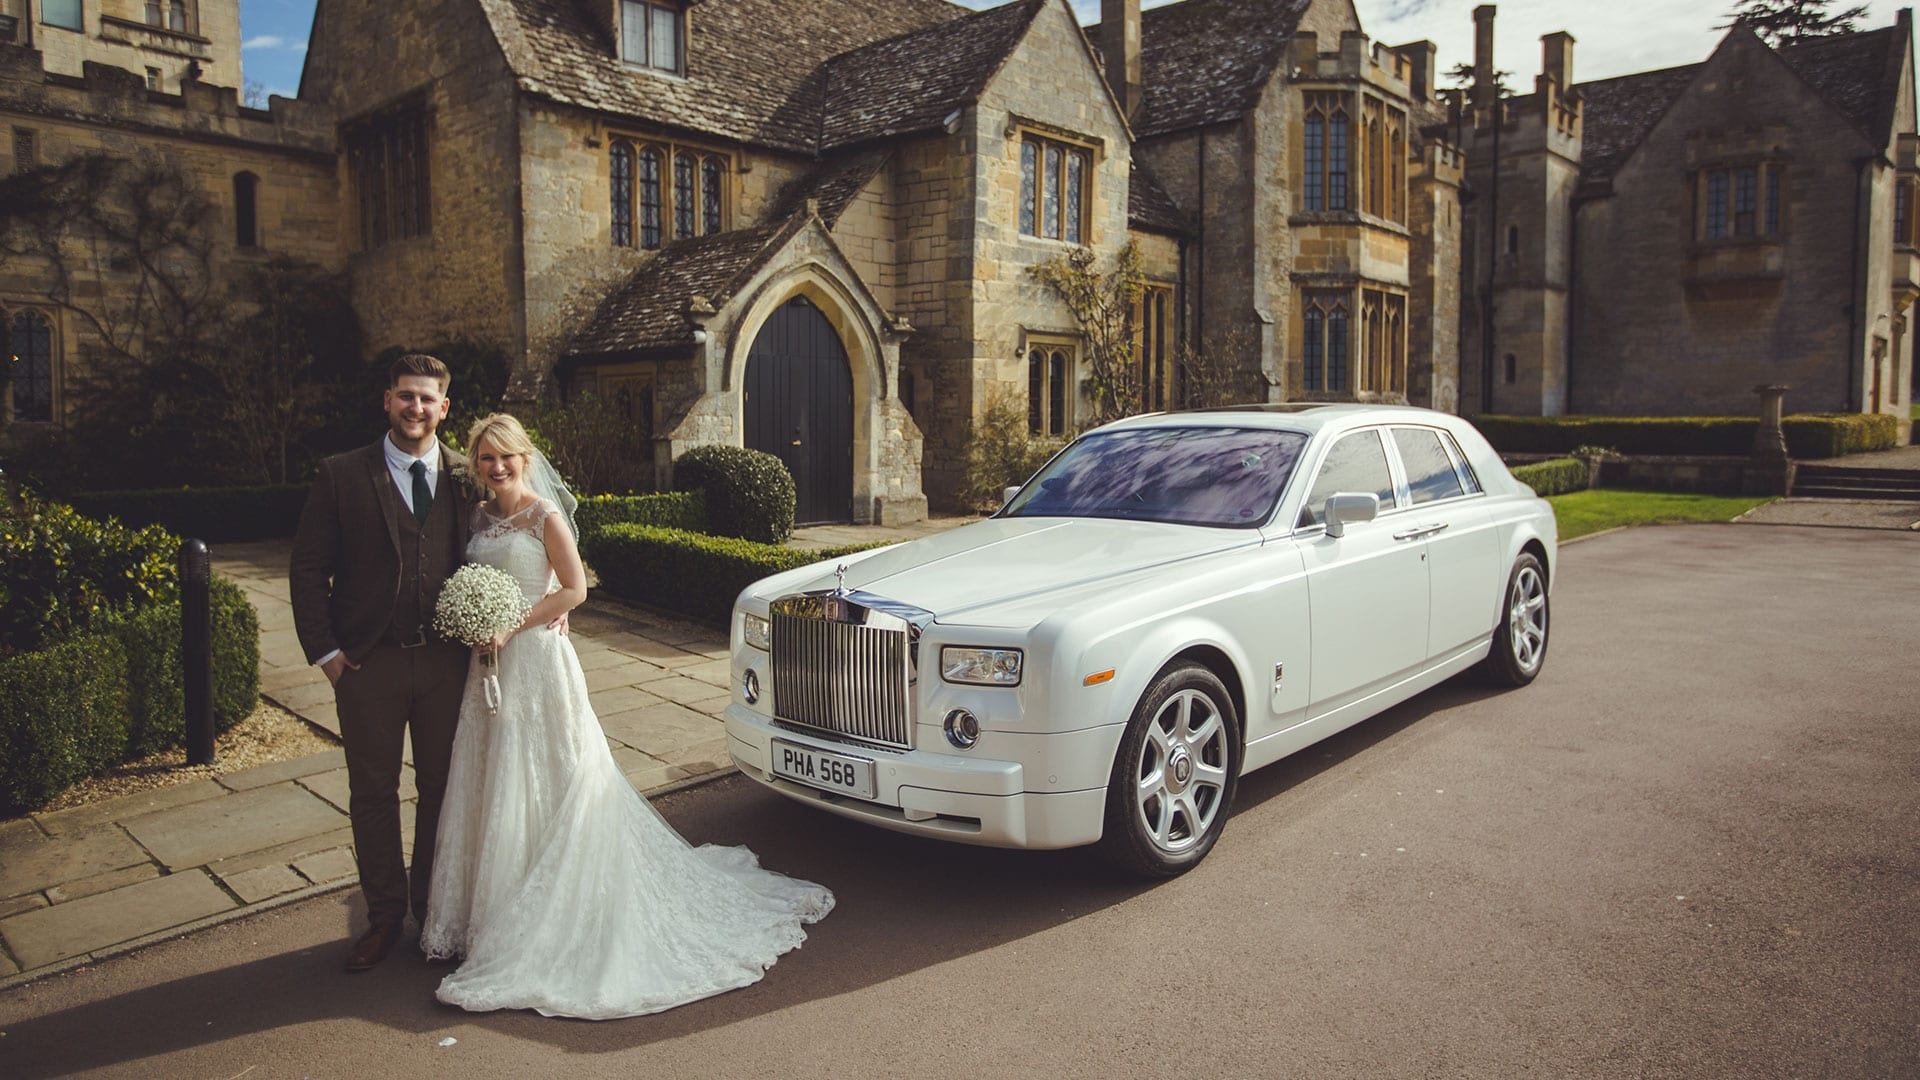 Tony and Steph with the Rolls-Royce Phantom Wedding Car